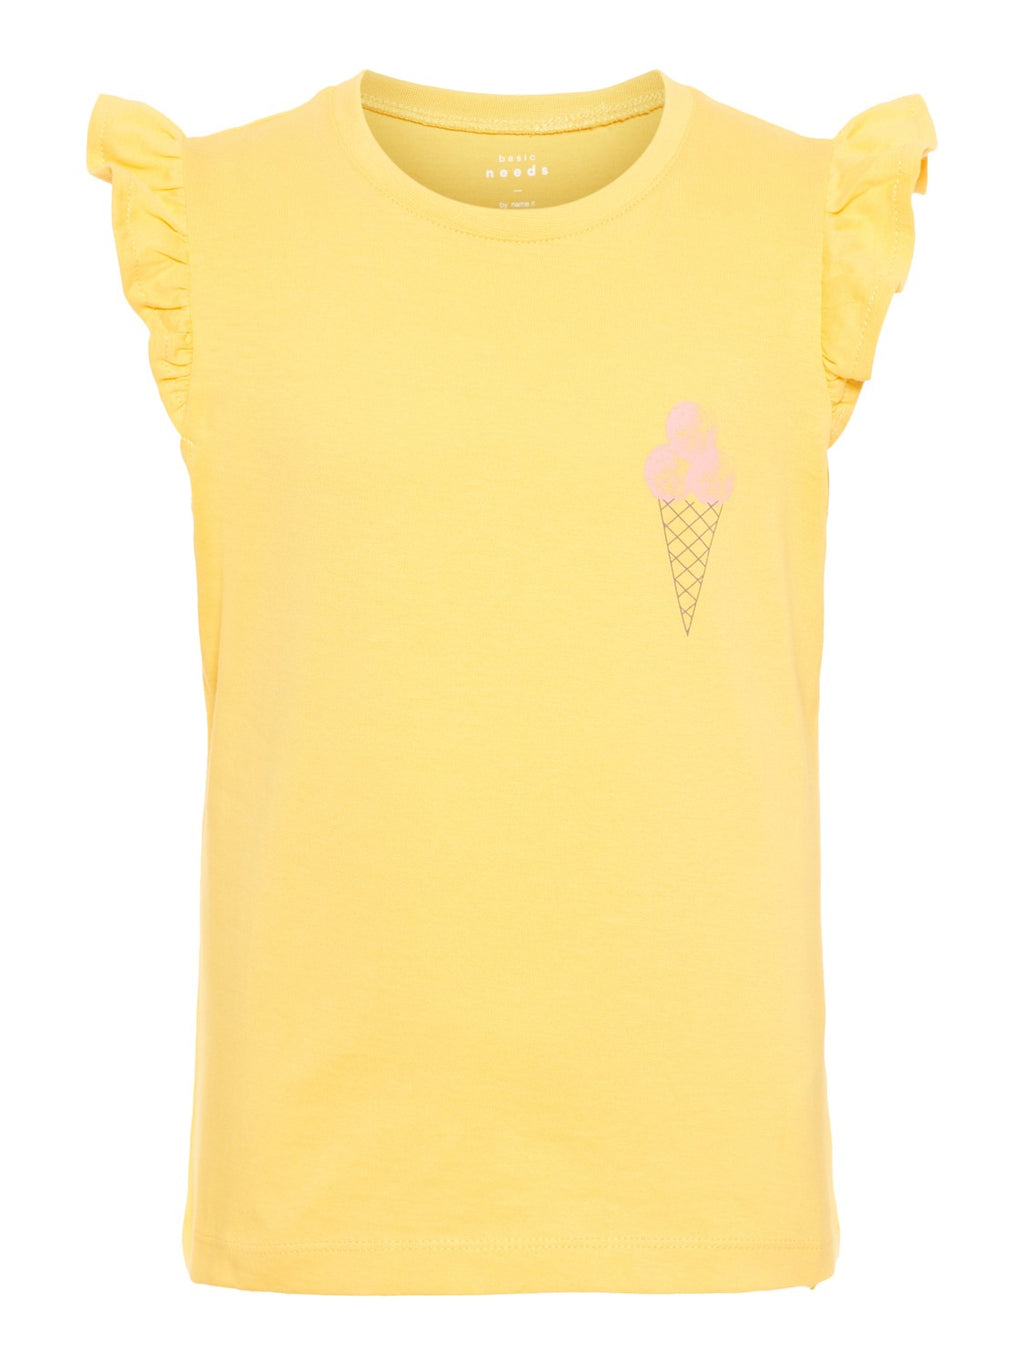 Name it : T-shirt Icecream T-shirt Outlet Kamélie.be